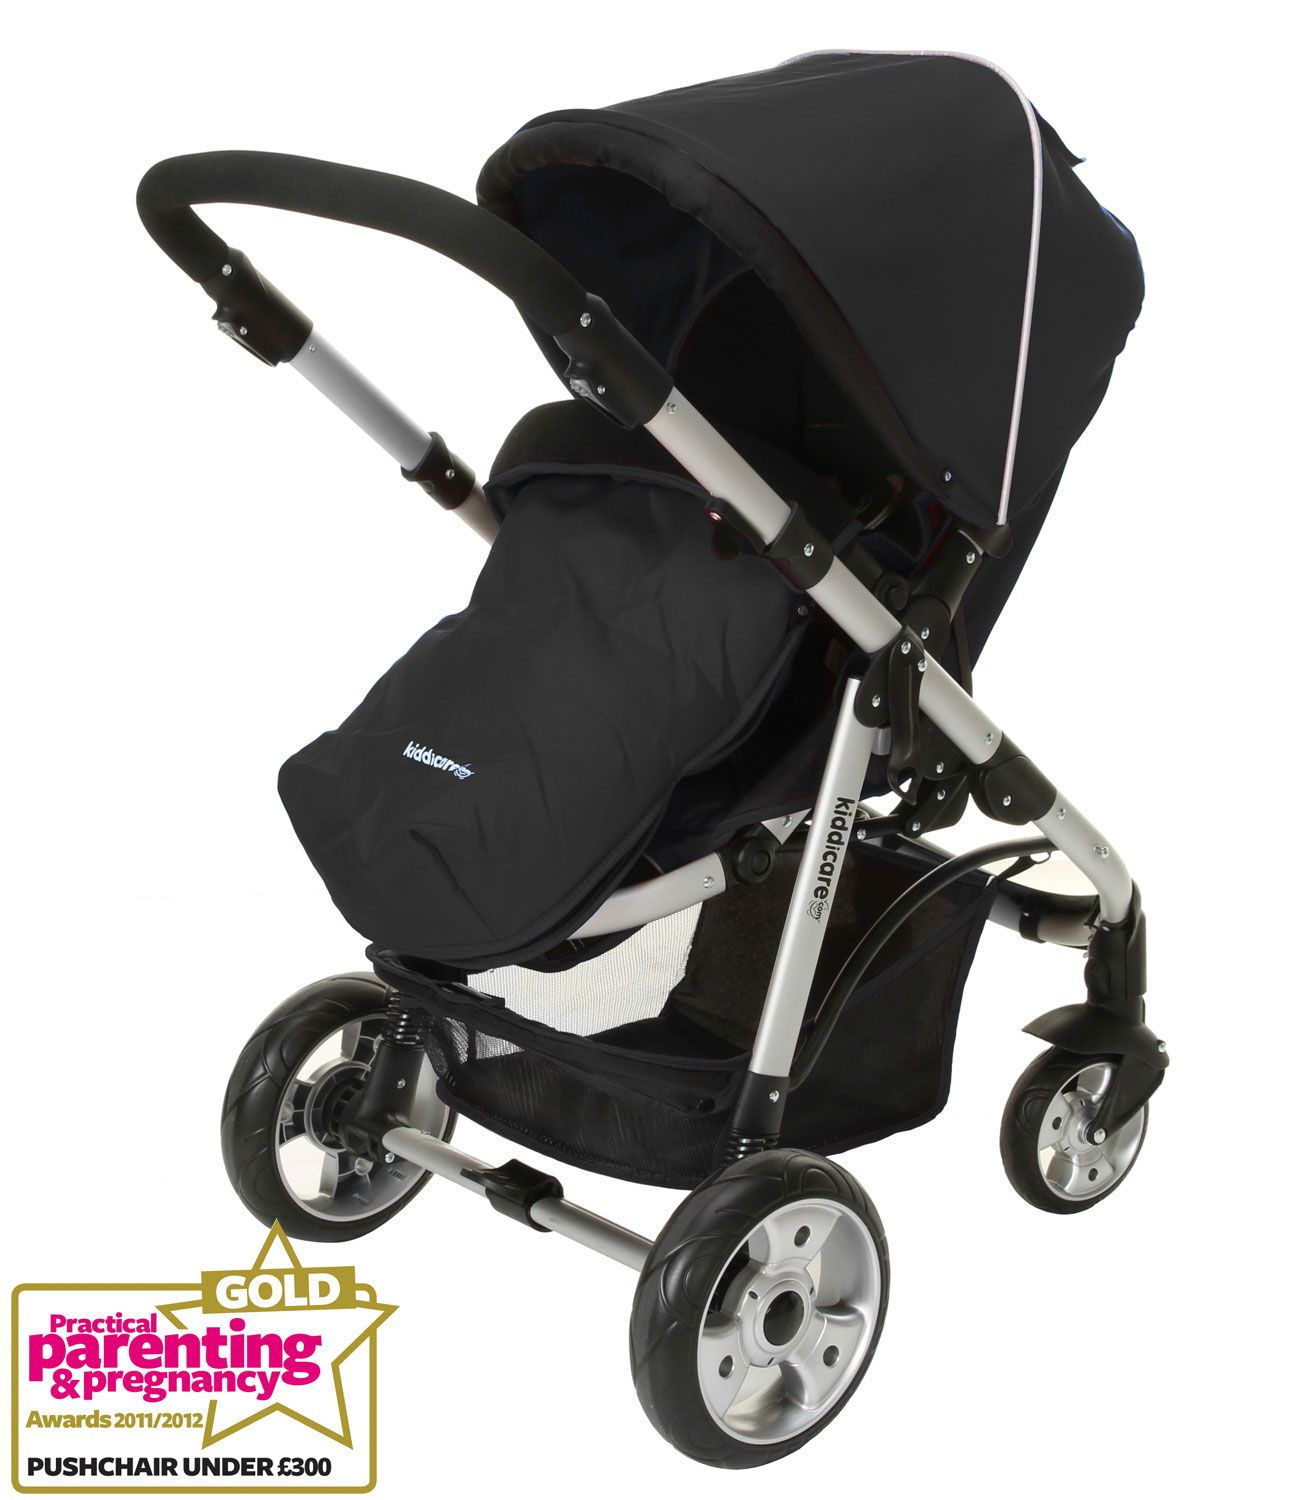 Example of a backward facing stroller, sometimes called